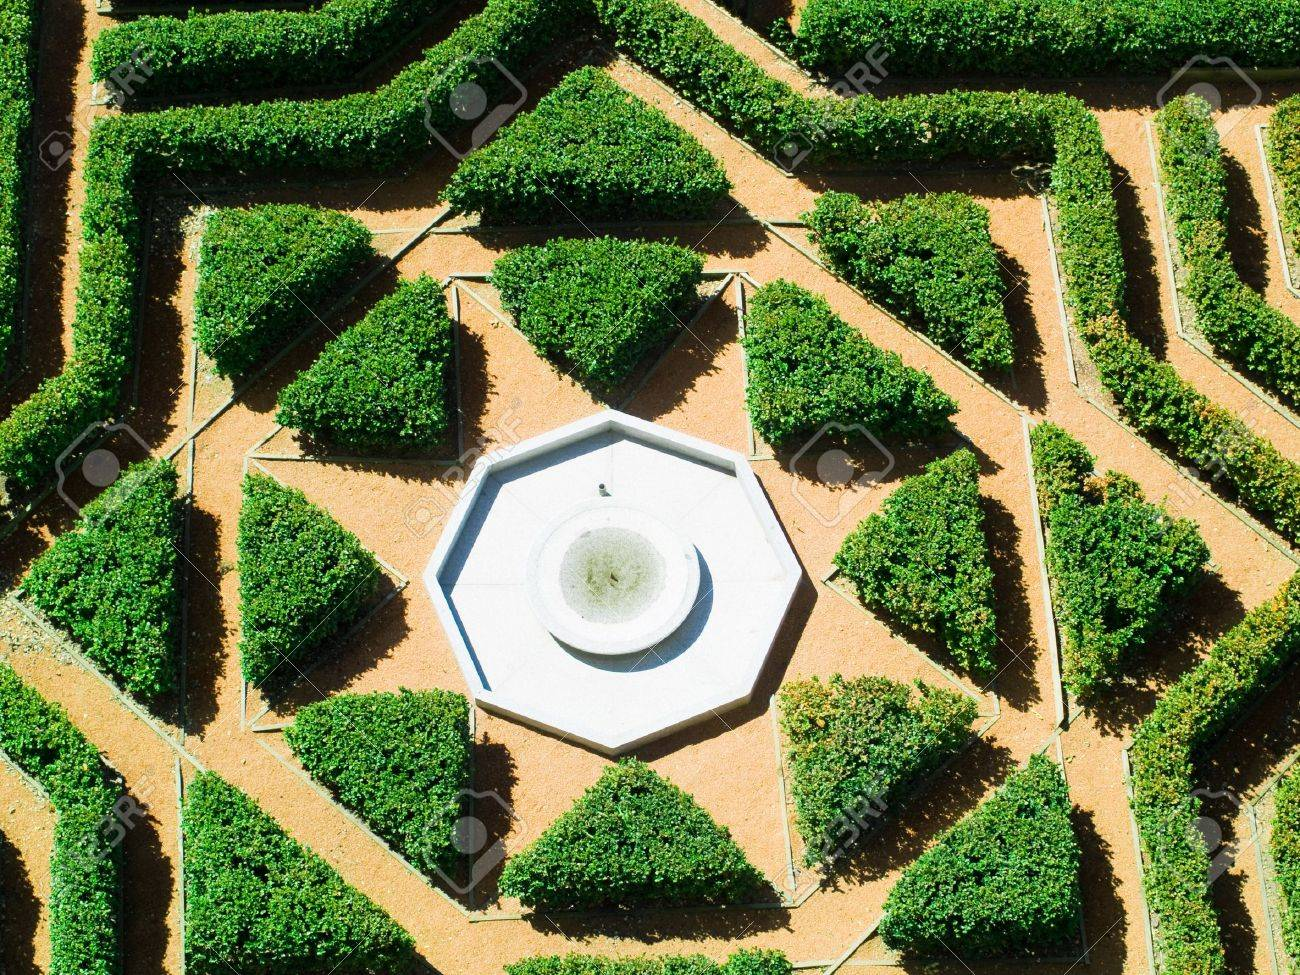 Hedges Gardens With Fountain, Aerial View Stock Photo, Picture And on